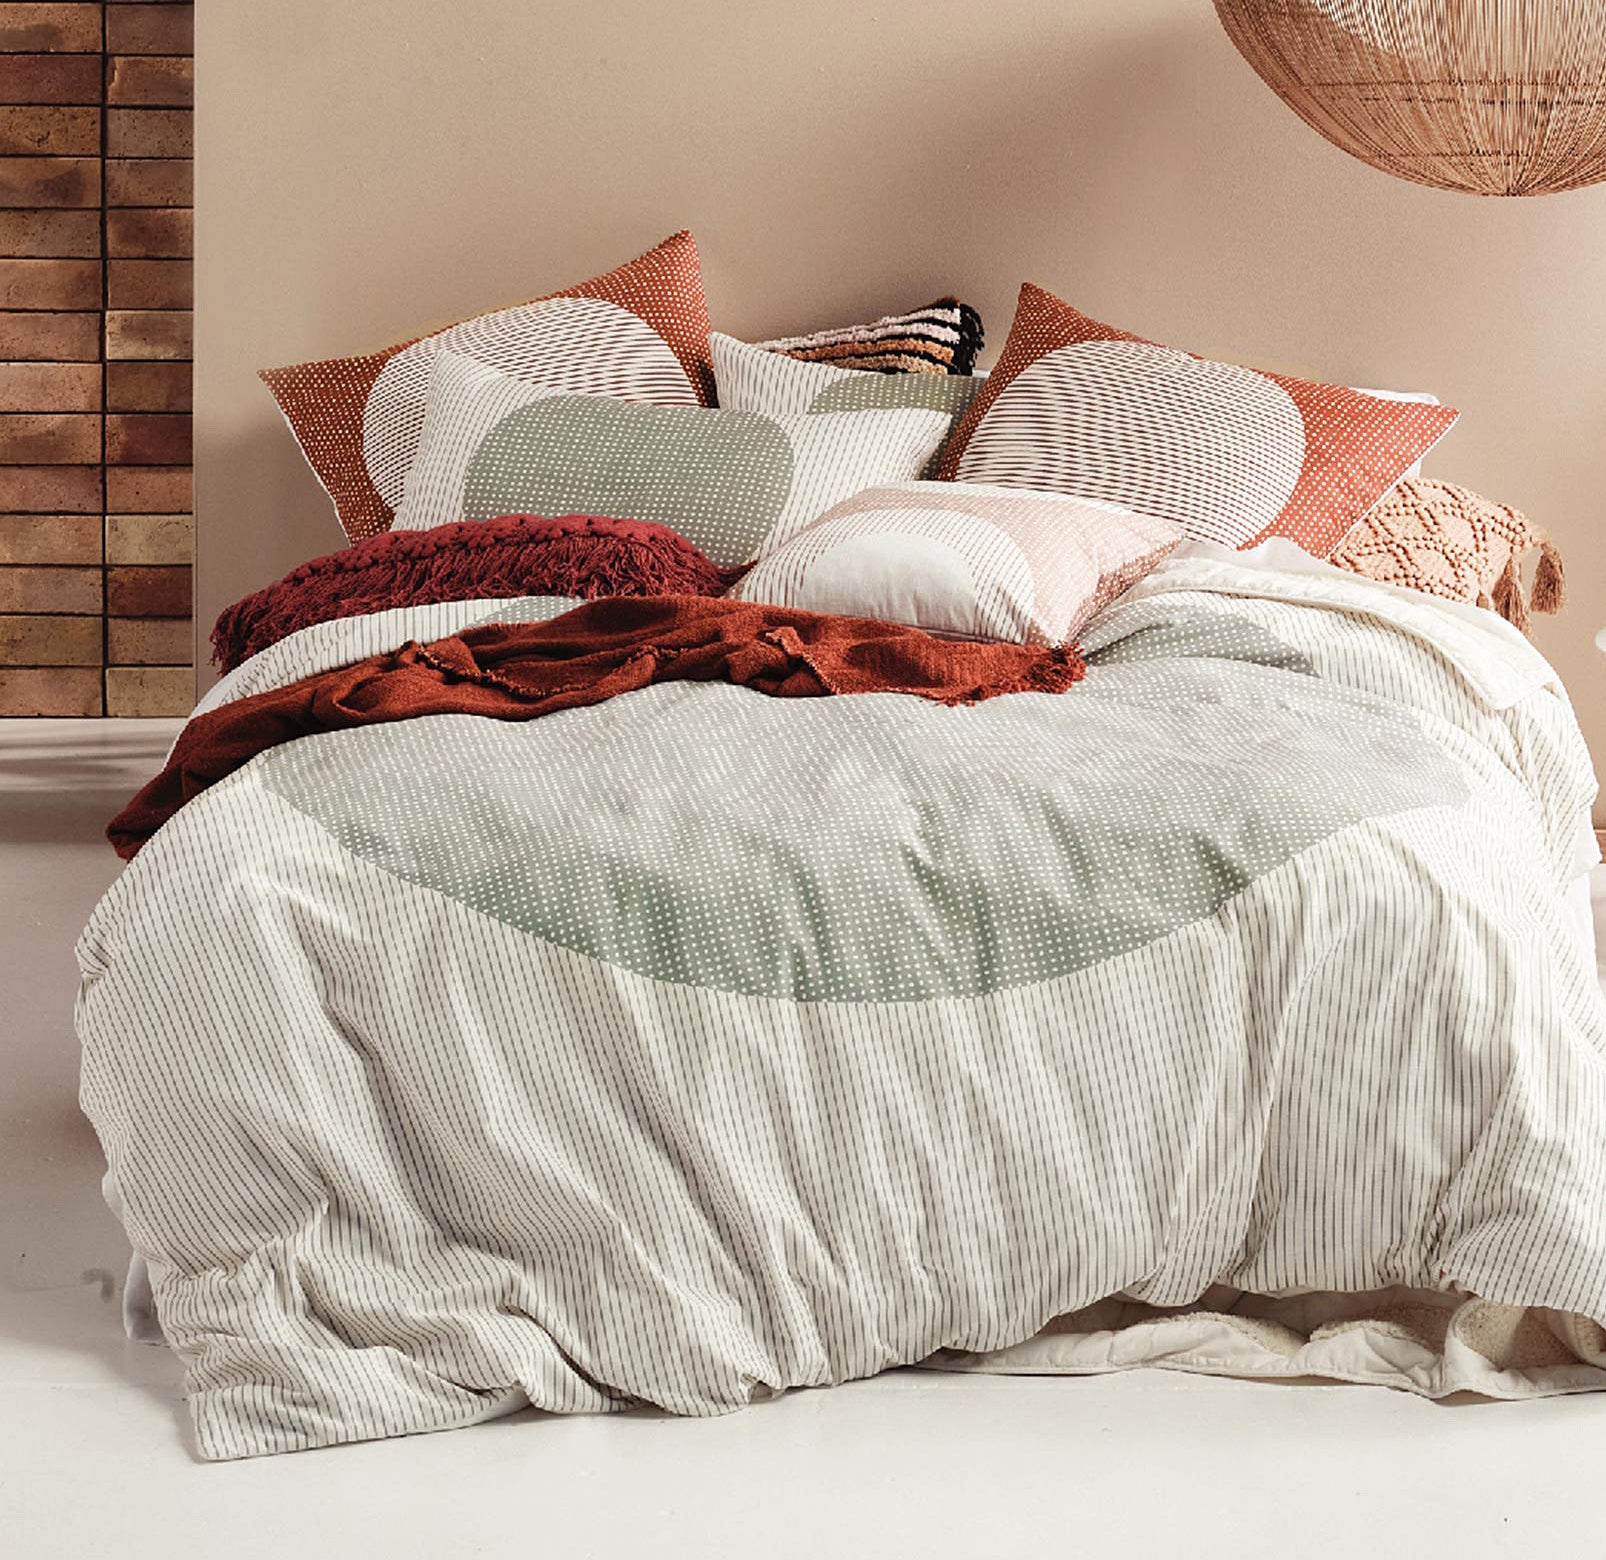 A duvet on a bed covered with pillows